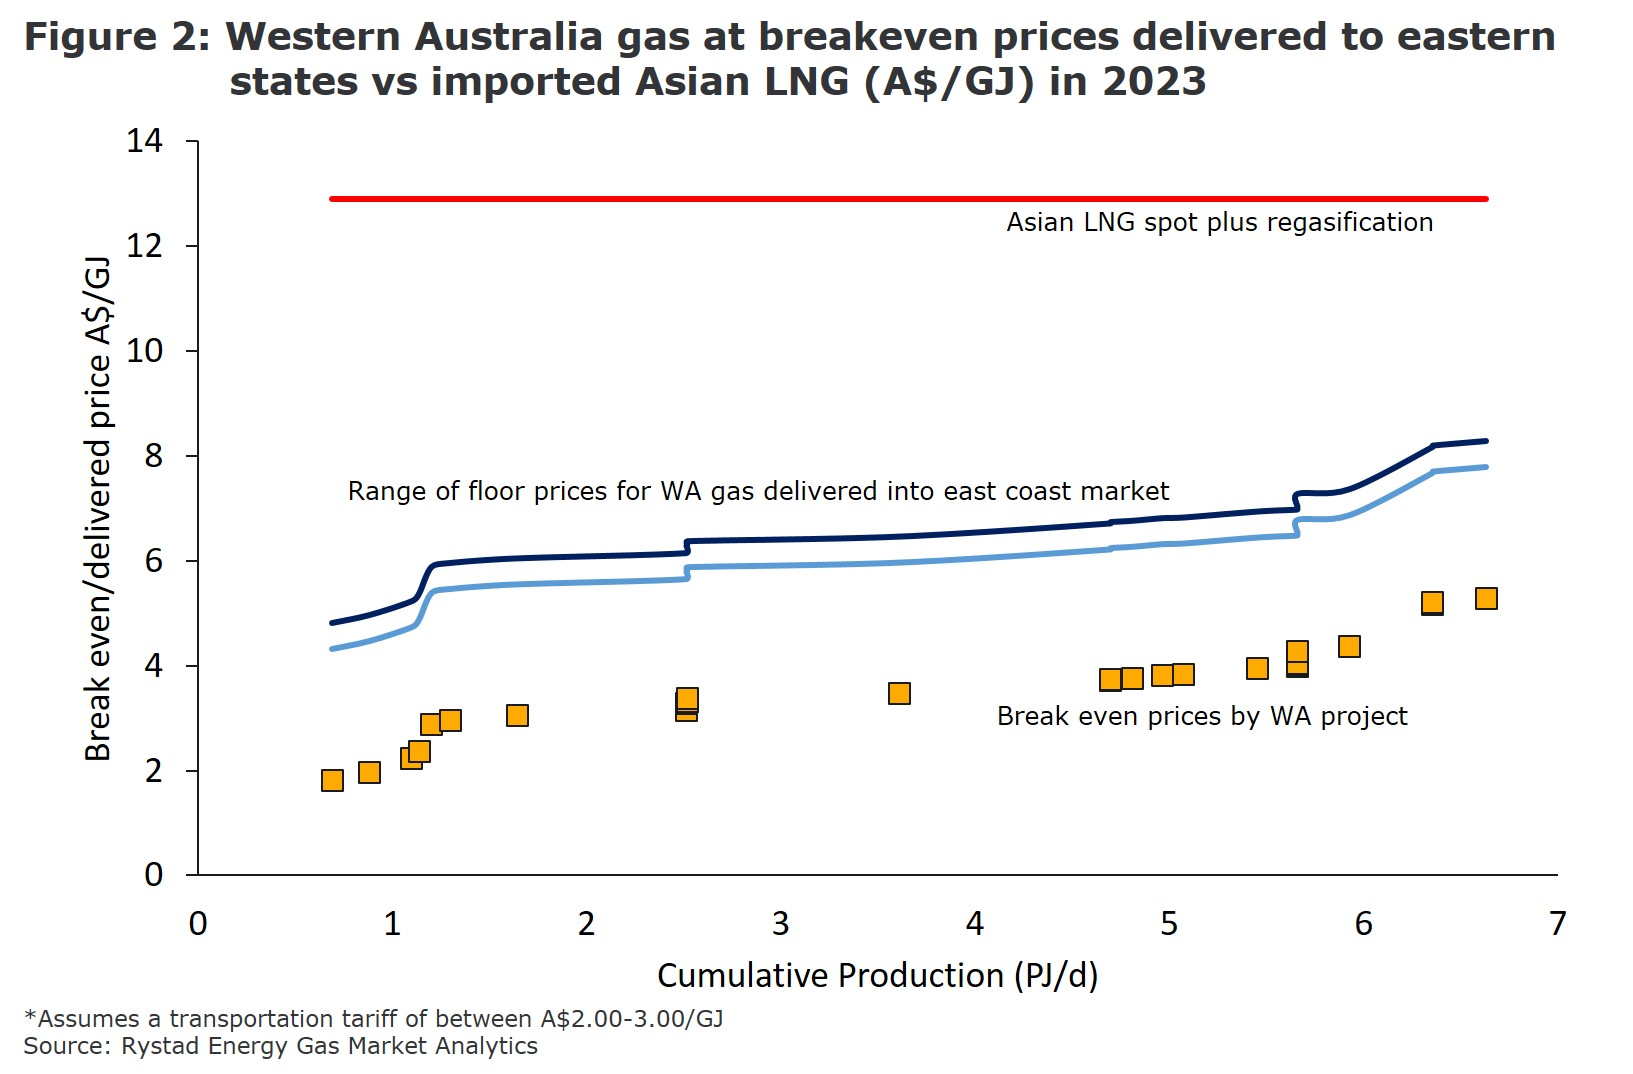 Figure 2: A graph showing the Western Australia gas at breakeven prices delivered to eastern states vs imported Asian LNG in 2023. Source: Rystad Energy Gas Market Analytics